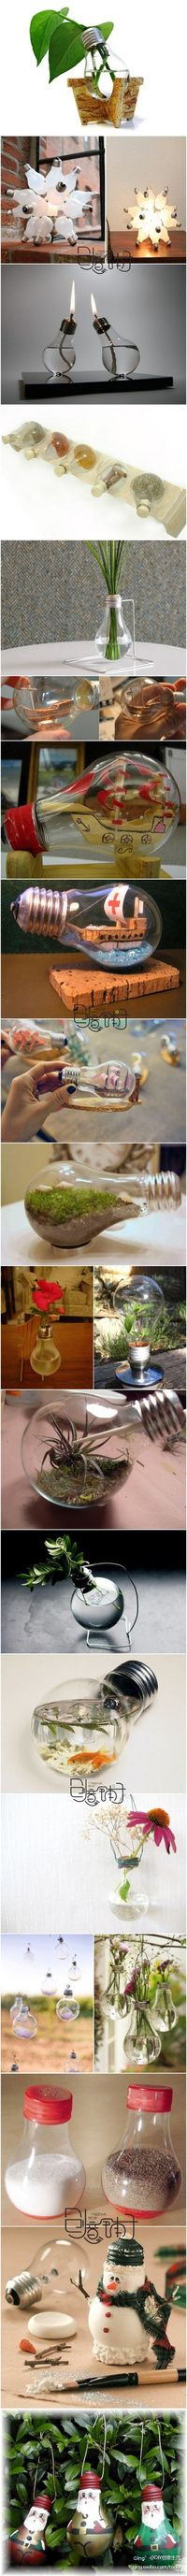 What to do with old lightbulbs